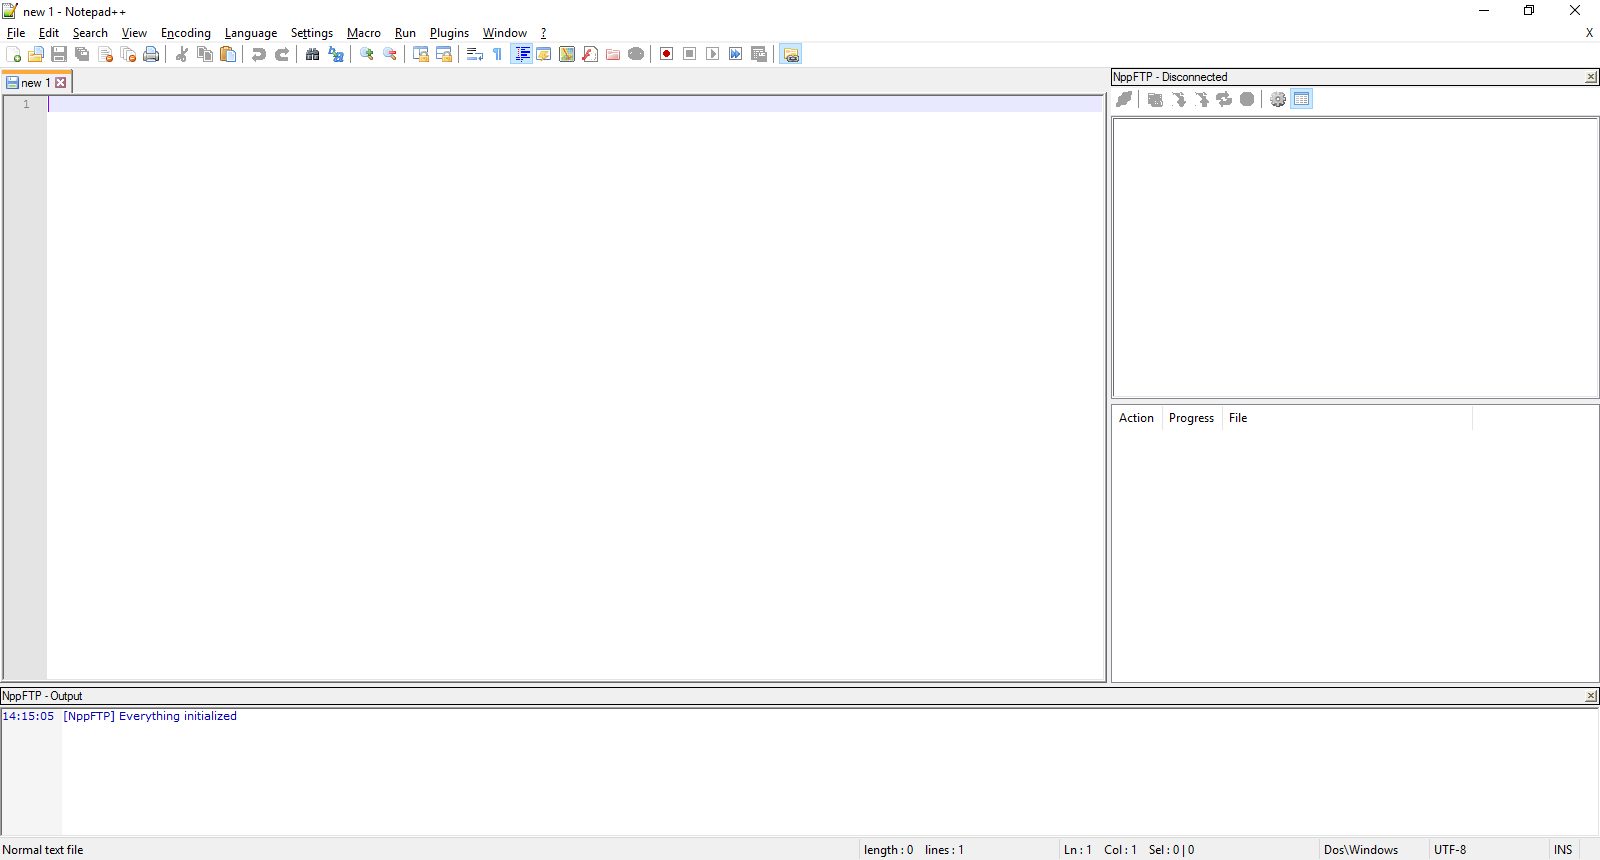 Notepad++ with Plugin in view